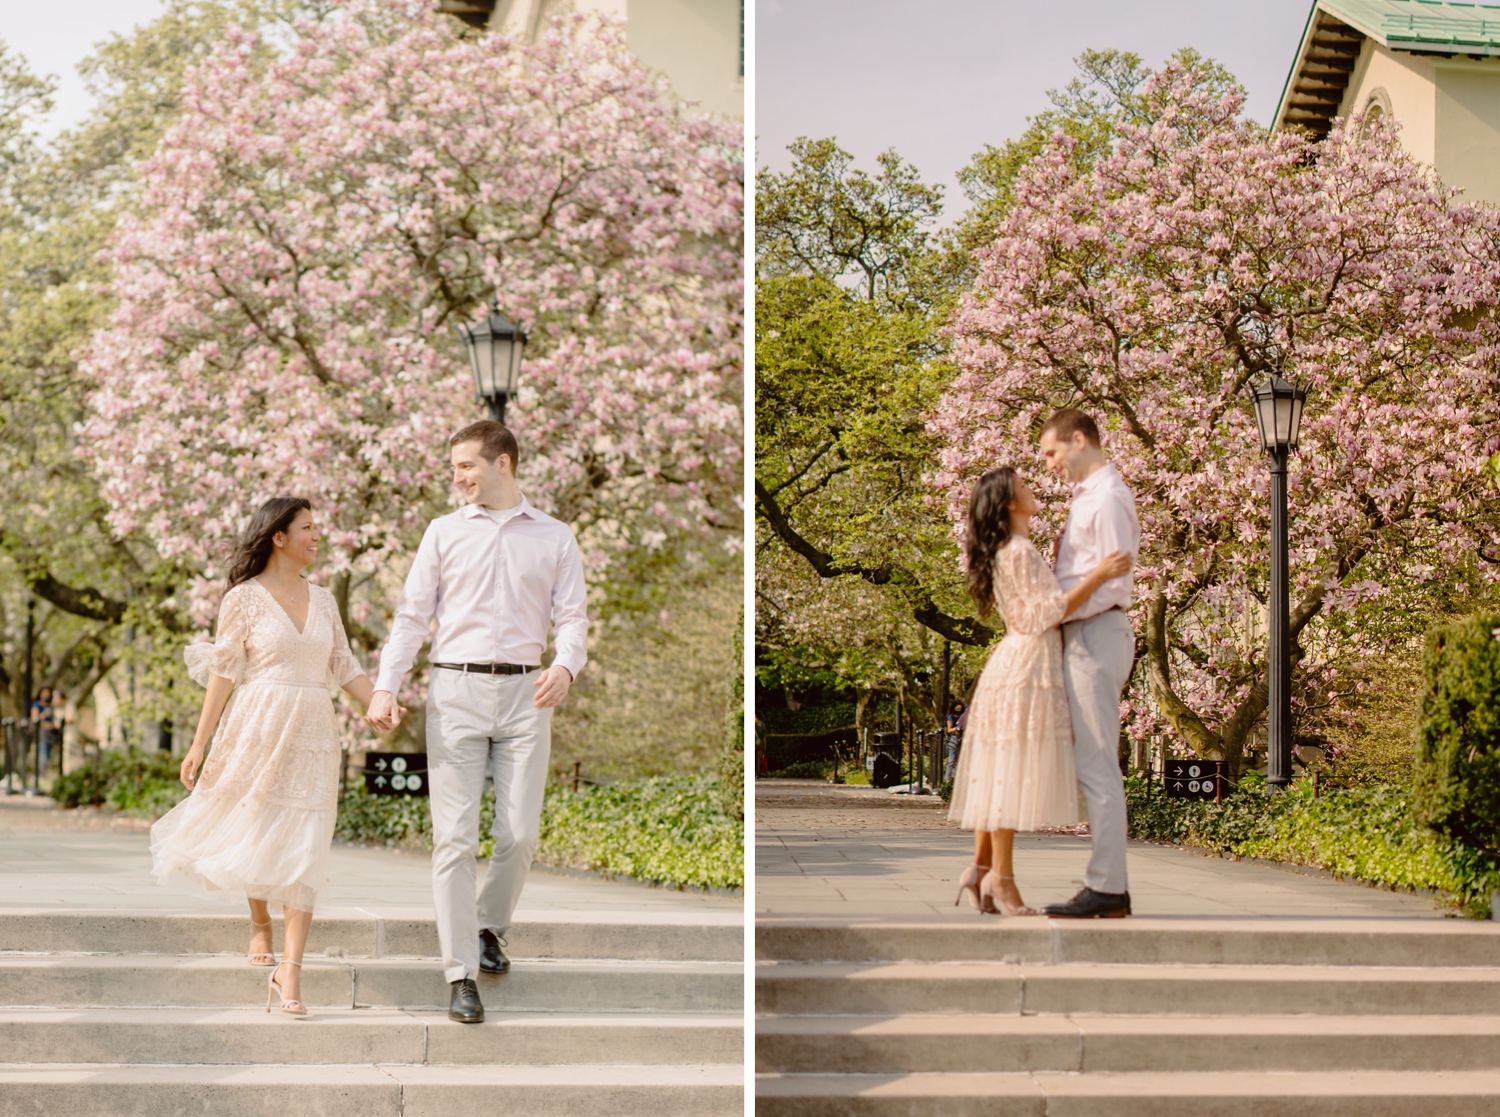 Spring Engagement Session in NYC, NYC Engagement Session in Spring, Best Spots for a spring nyc engagement session